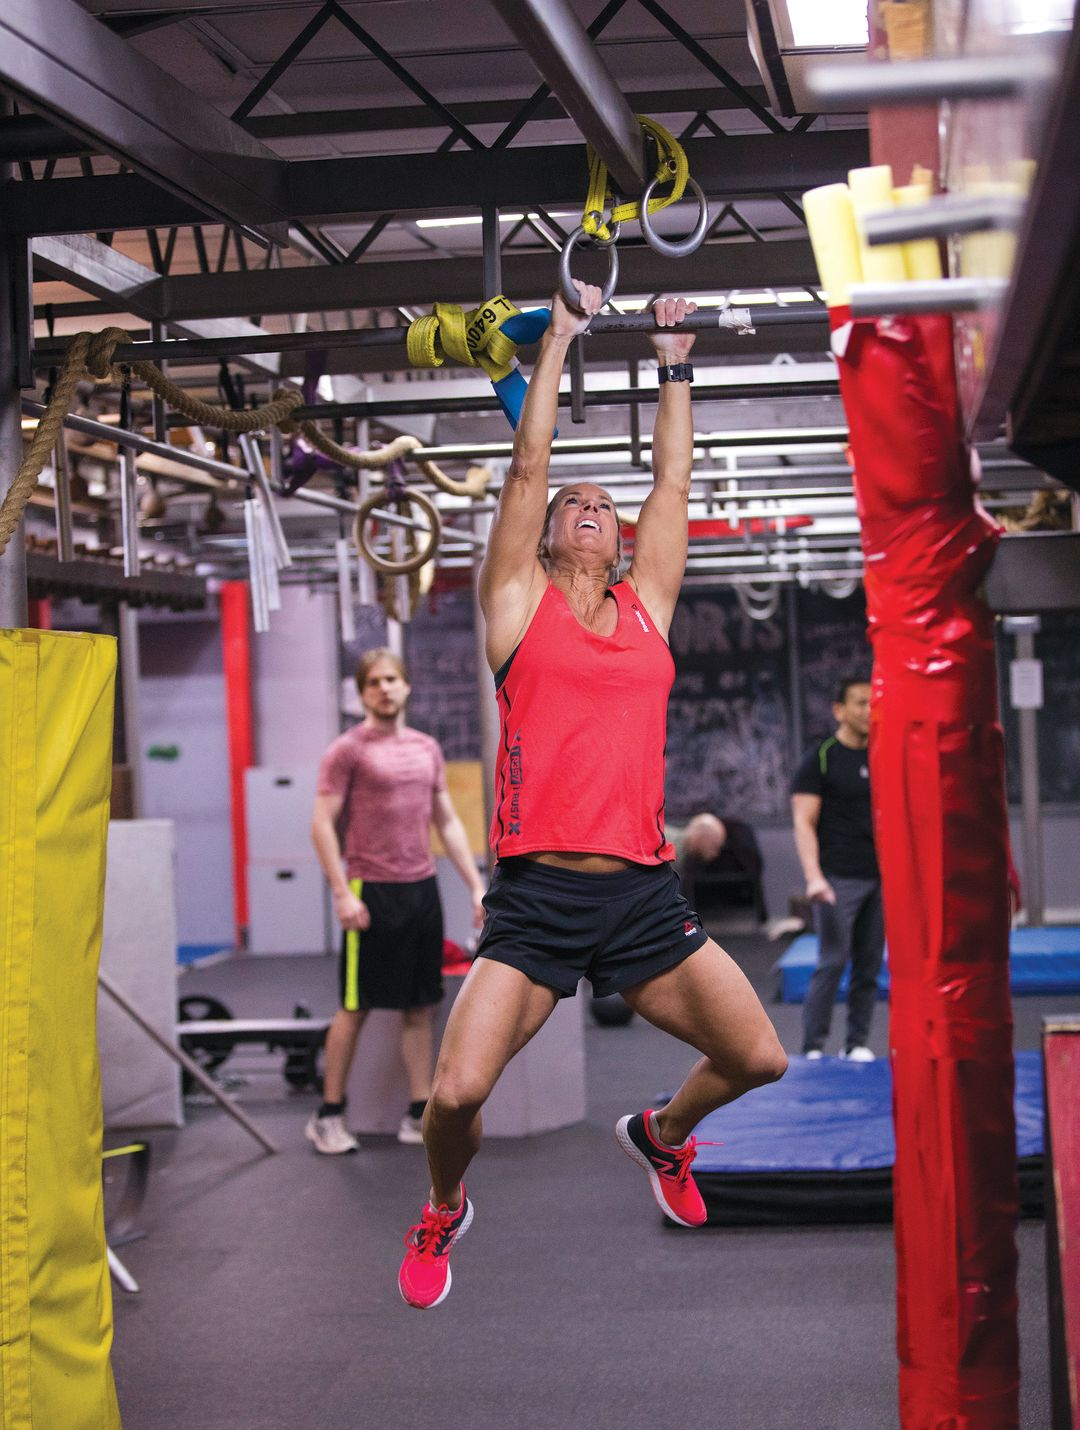 0317 higher learning ninja warrior class t5sppx